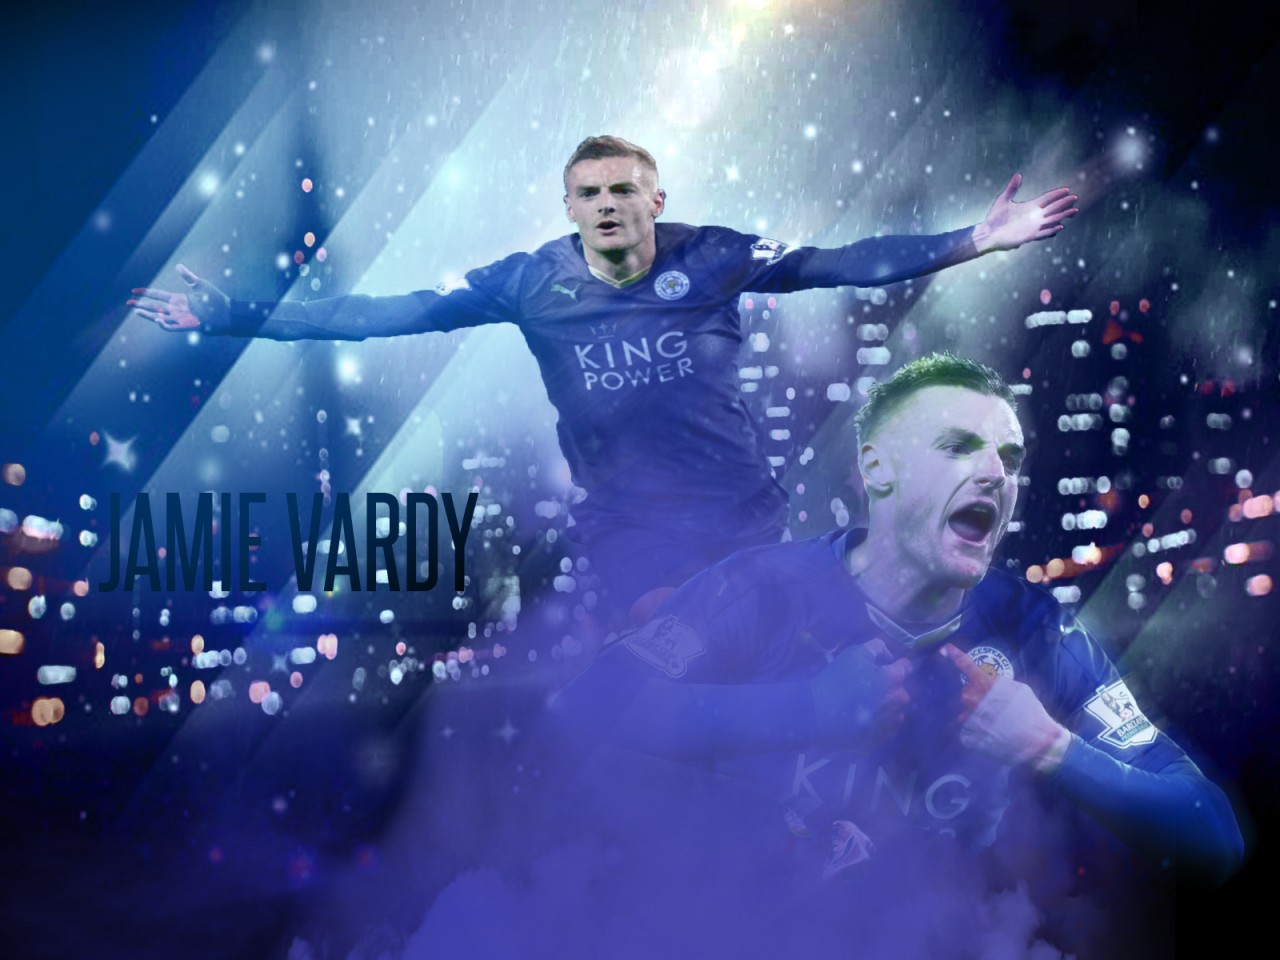 Jamie Vardy wallpapers